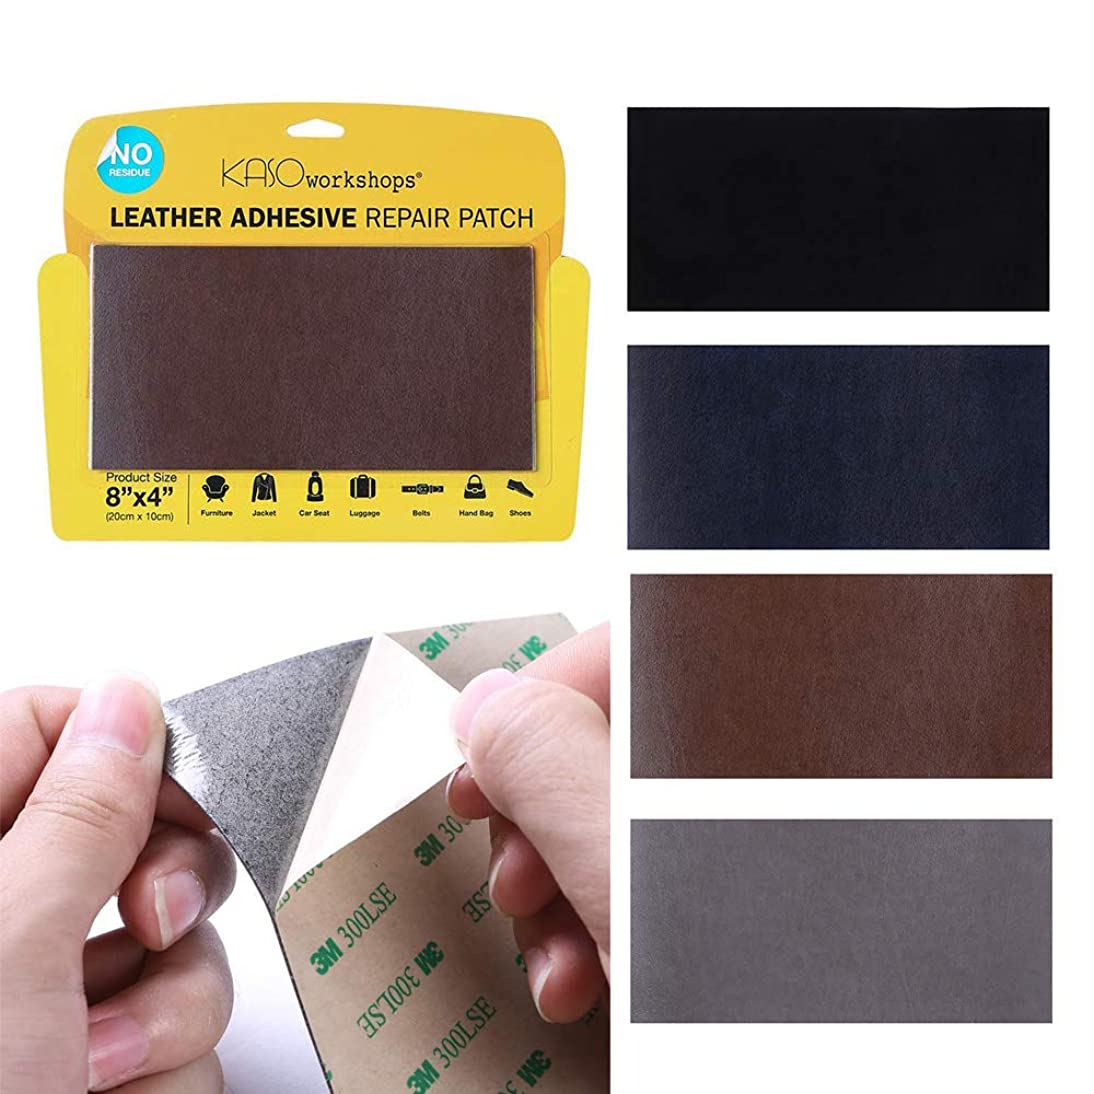 KASOworkshops Leather Repair Patch for Sofas Car Seats Handbags Jackets Leather & Vinyl Adhesive Plain 8 x 4 inch Brown